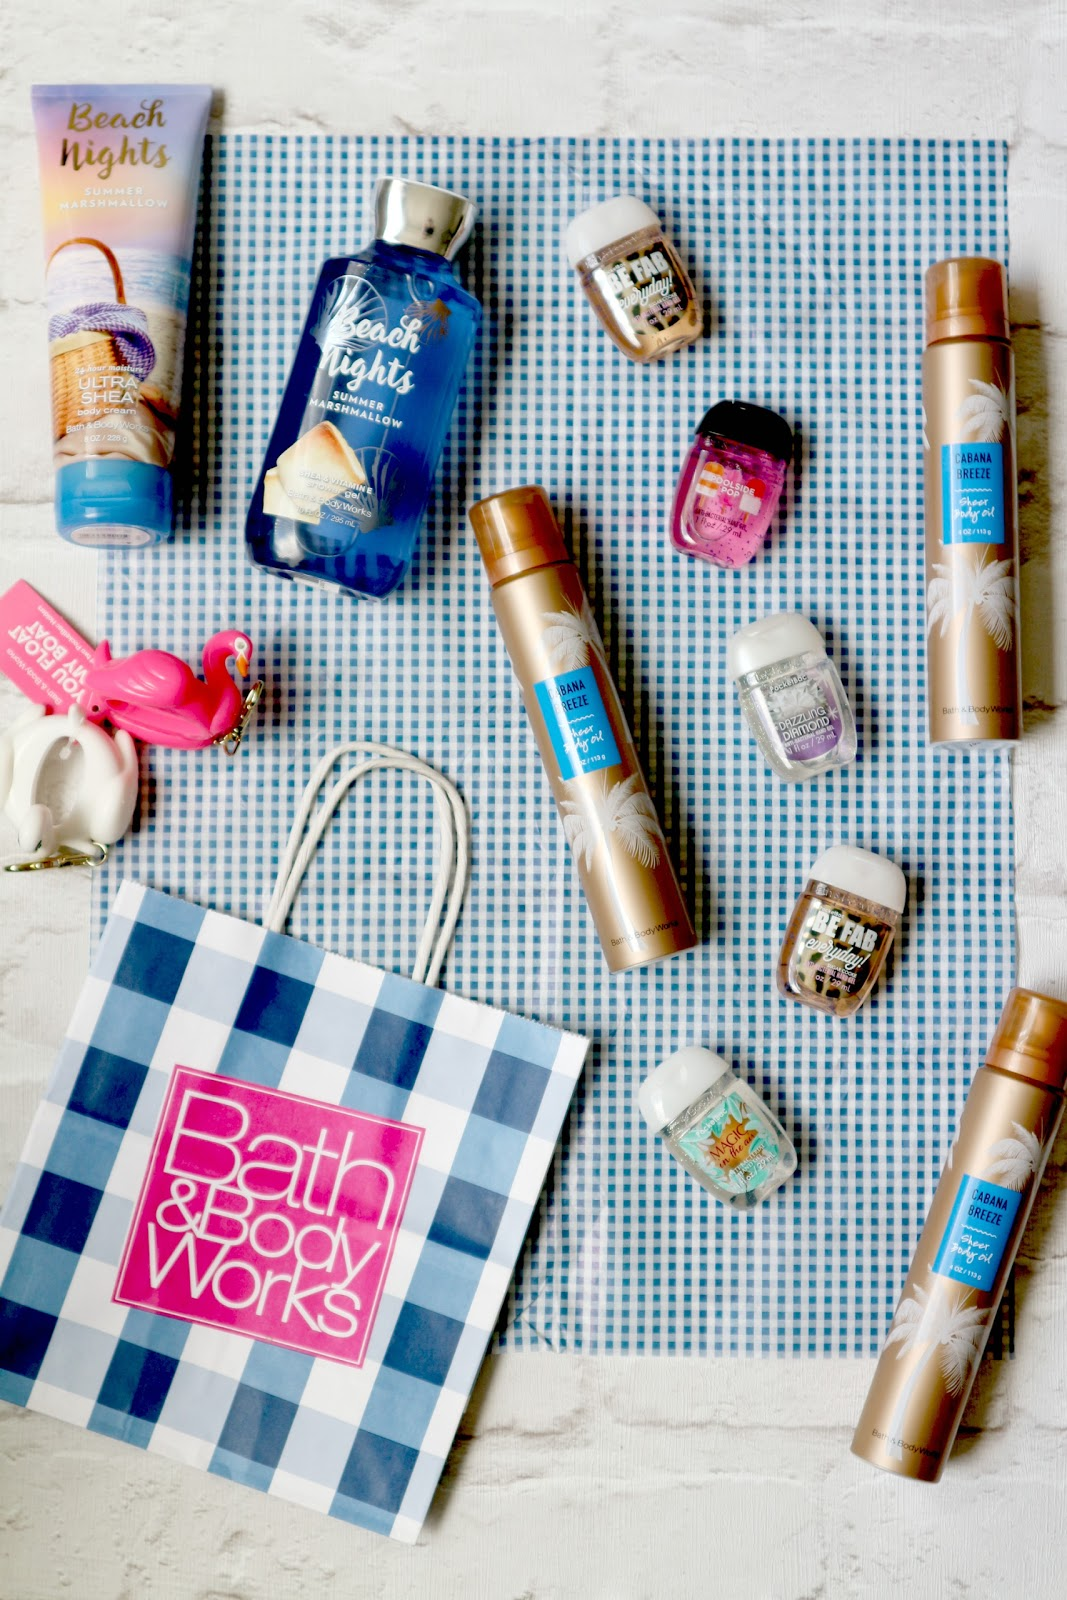 Bath and body works haul 2017